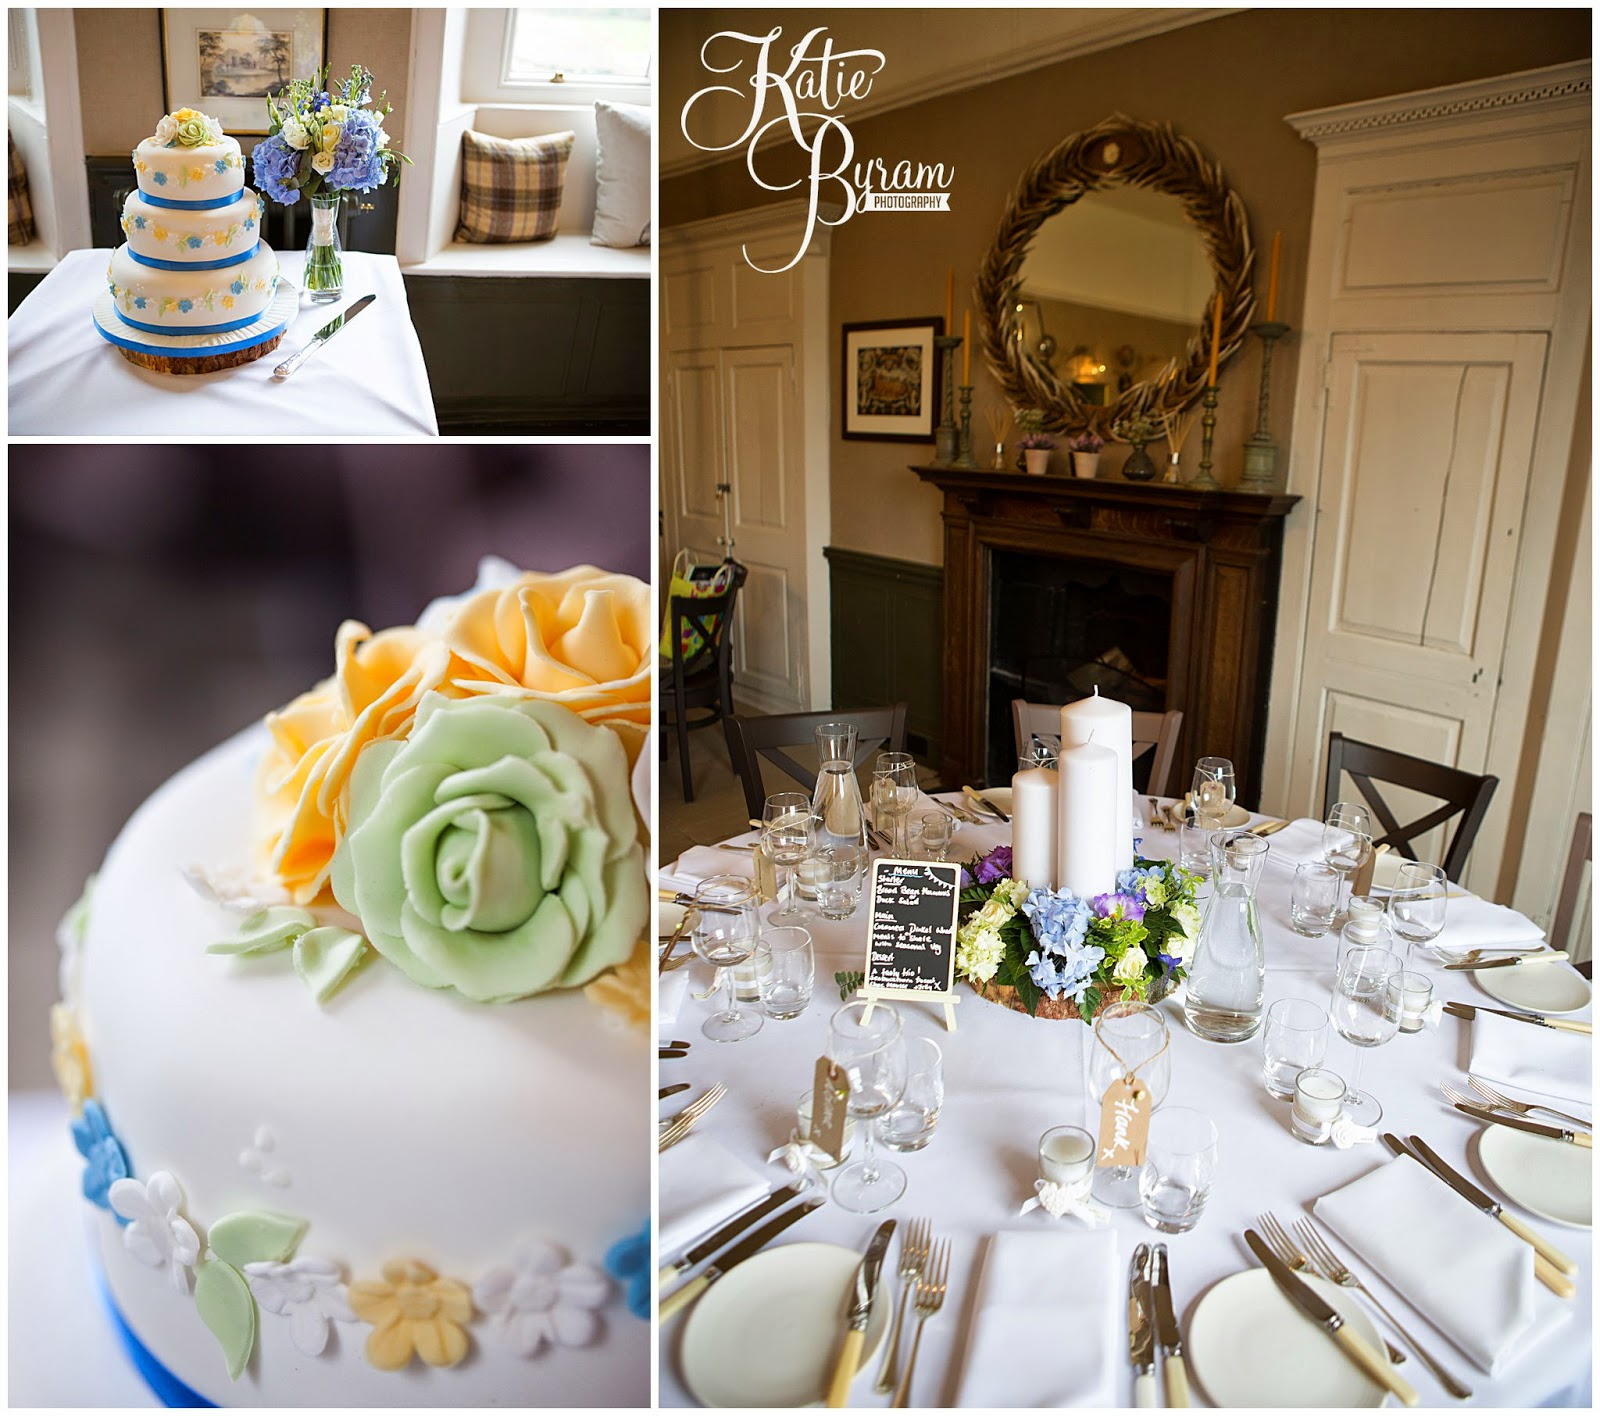 wedding cake, minsteracres wedding, lord crewe arms wedding, dog at wedding, scoops and smiles, katie byram photography, ice cream van hire newcastle, newcastle wedding photography, relaxed wedding photography, quirky, 50